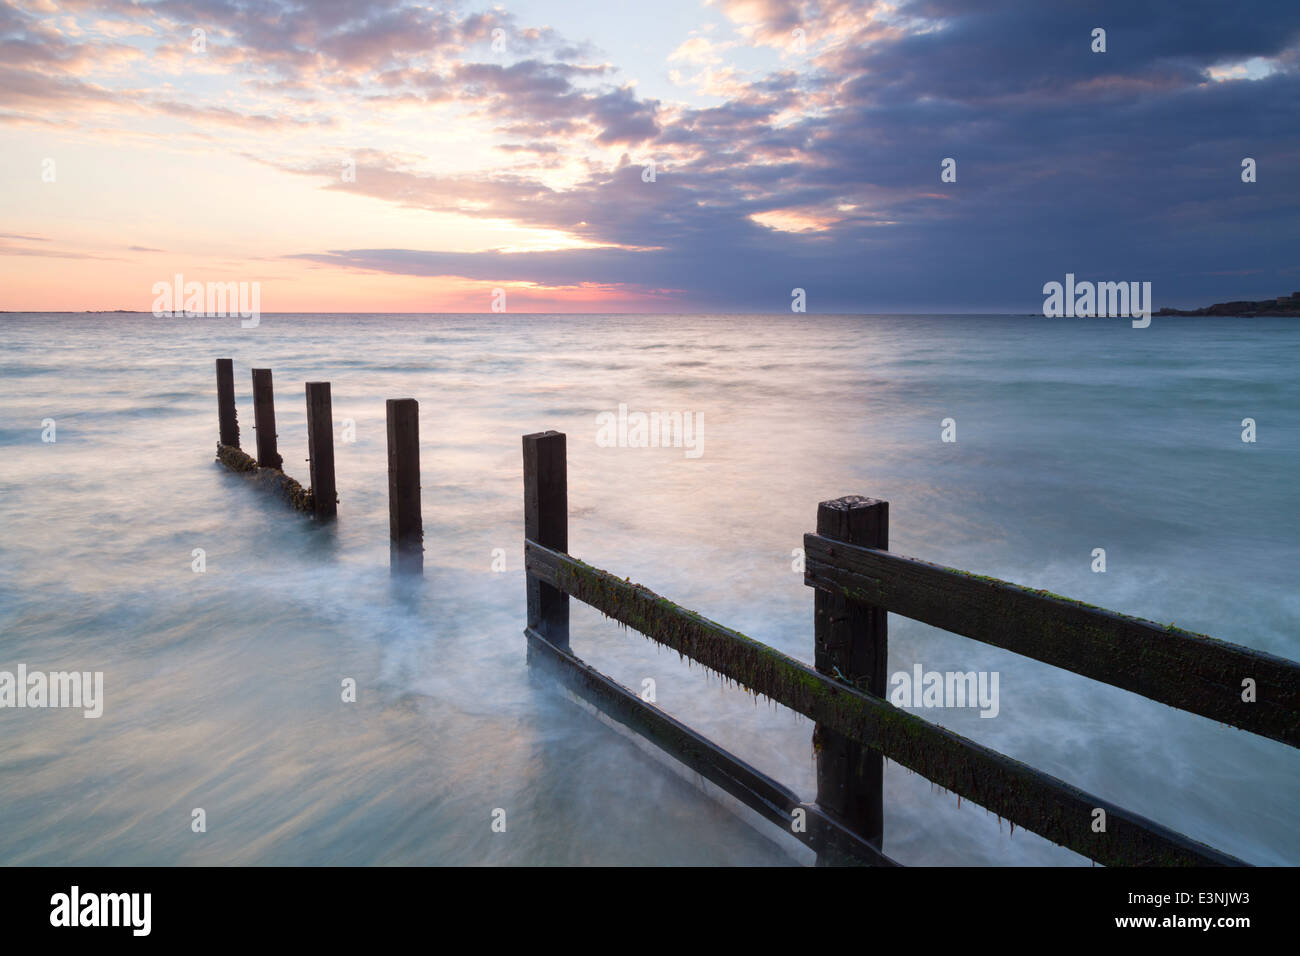 Wooden posts at sunset Vazon beach Guernsey - Stock Image